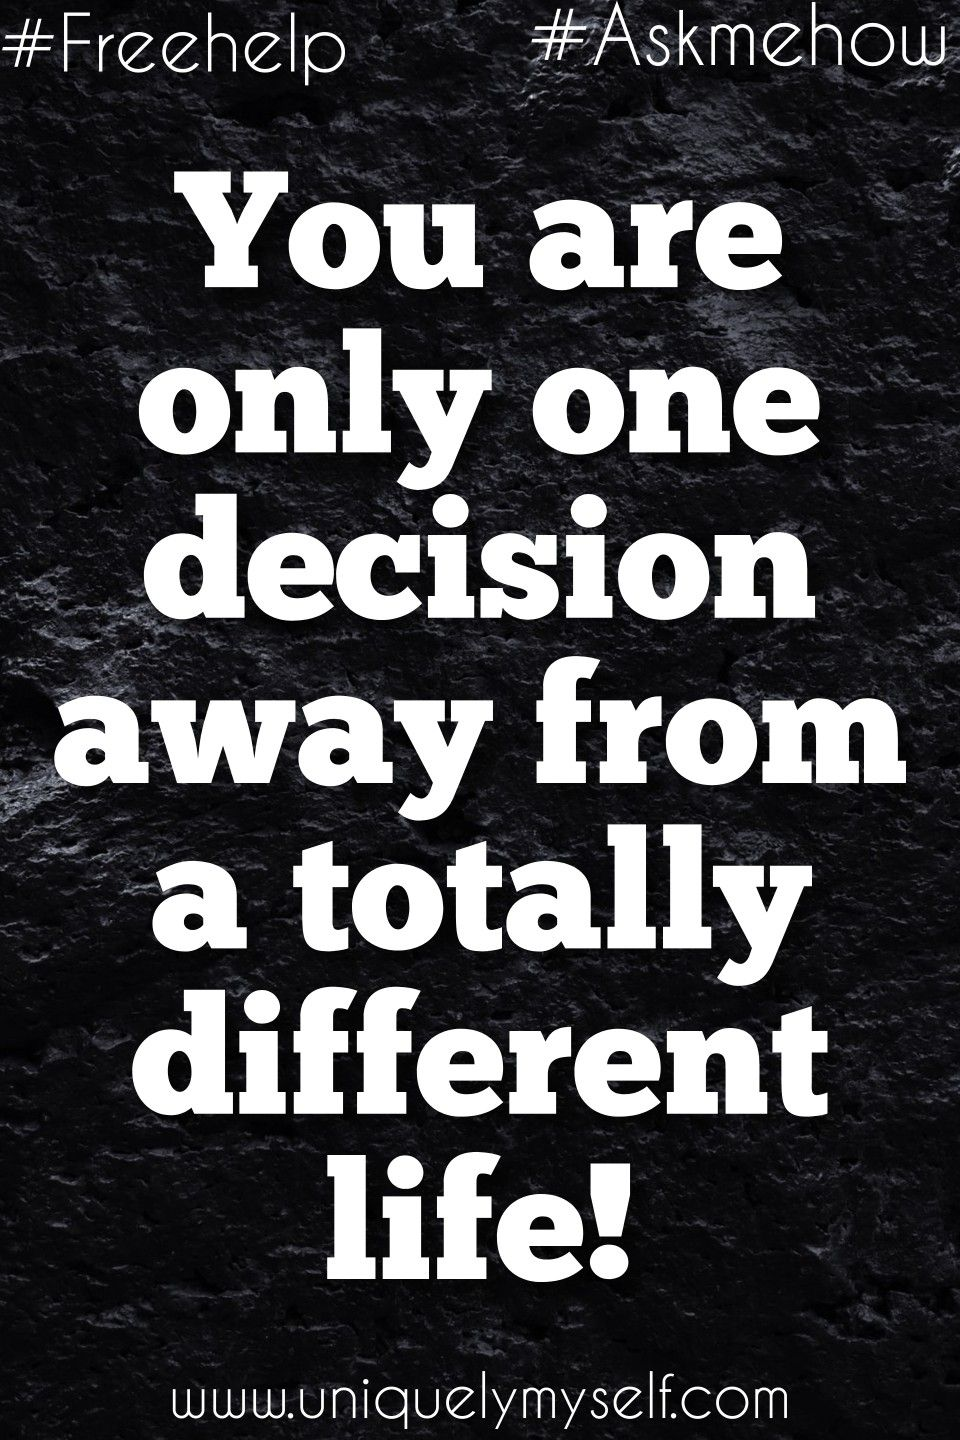 You are only ONE decision away from changing your life forever! Are you following me?   #freehelp   #changeyourlife   #askmehow